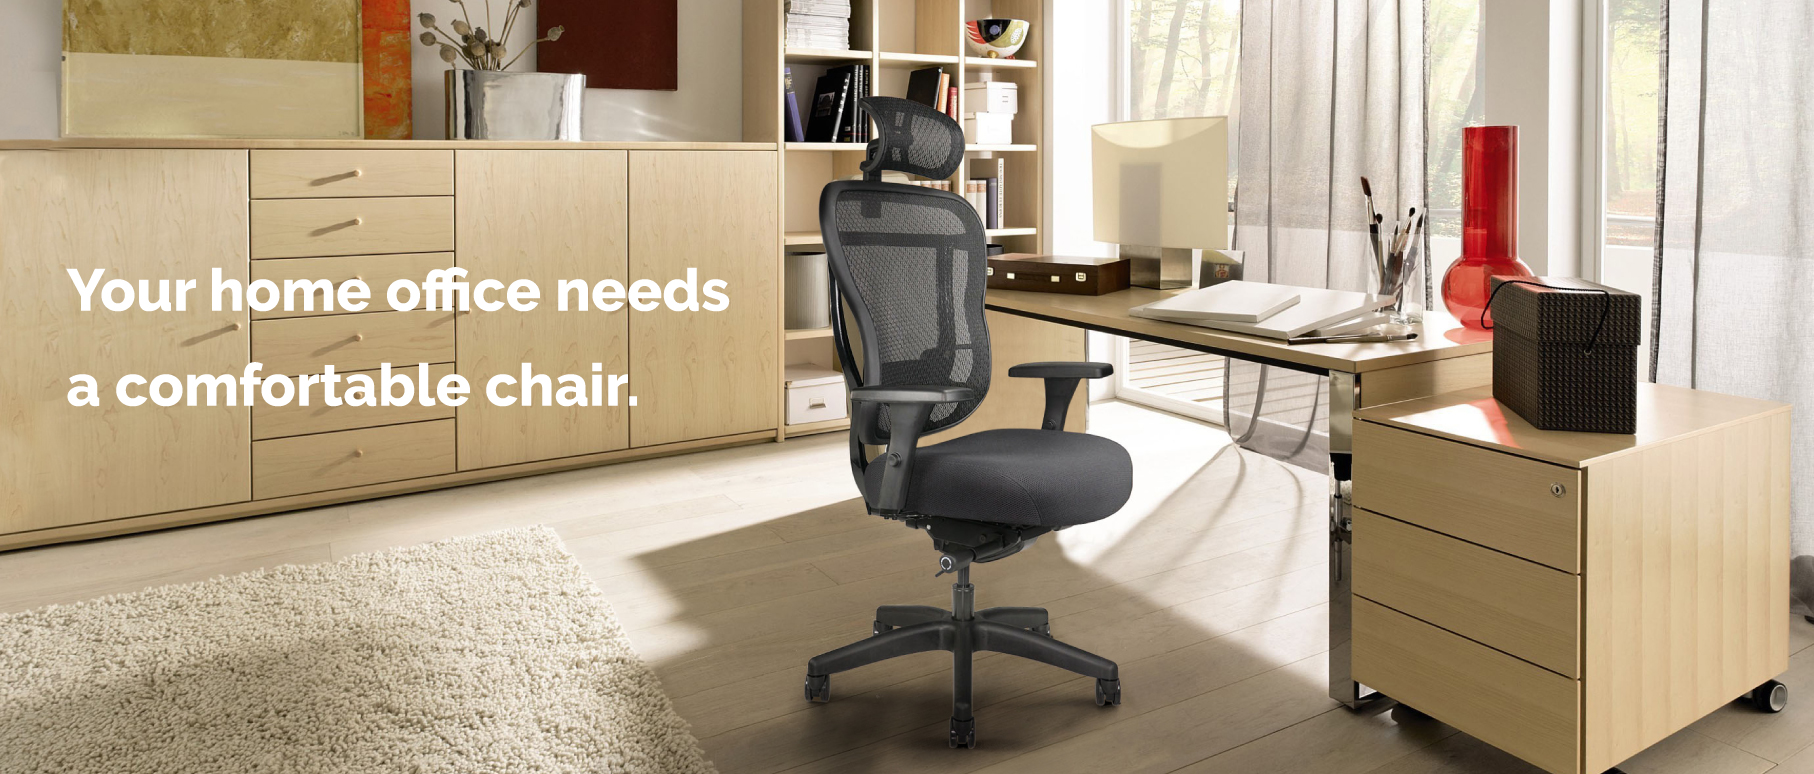 Home Office Chair with wheels, arms, headres and optional headrest.